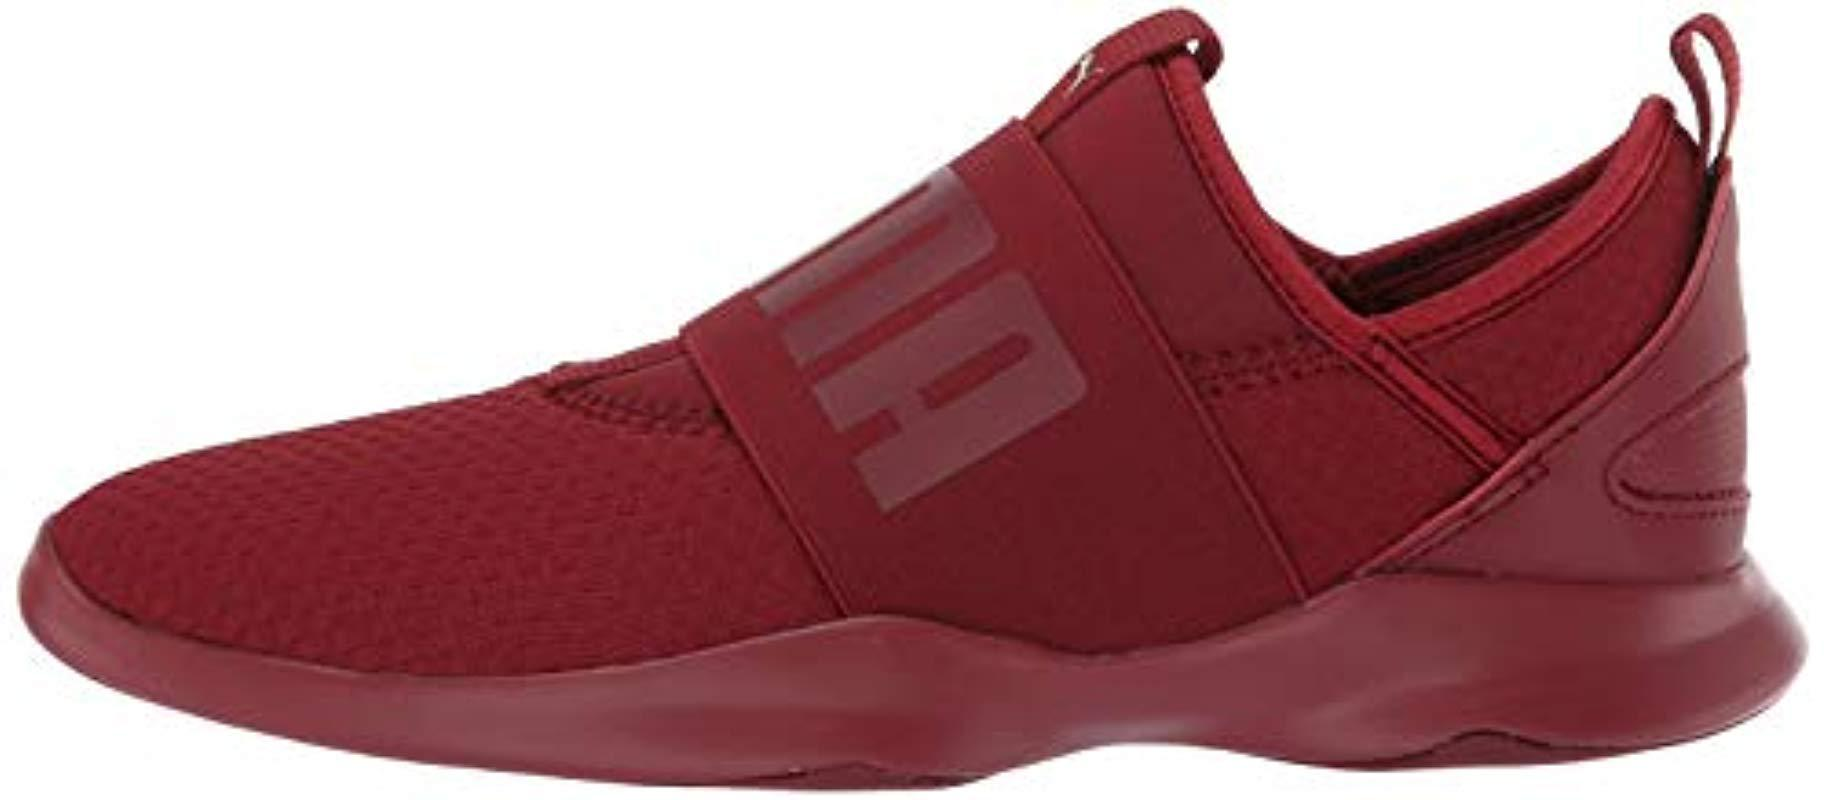 PUMA Synthetic Dare Wns Sneaker in Red